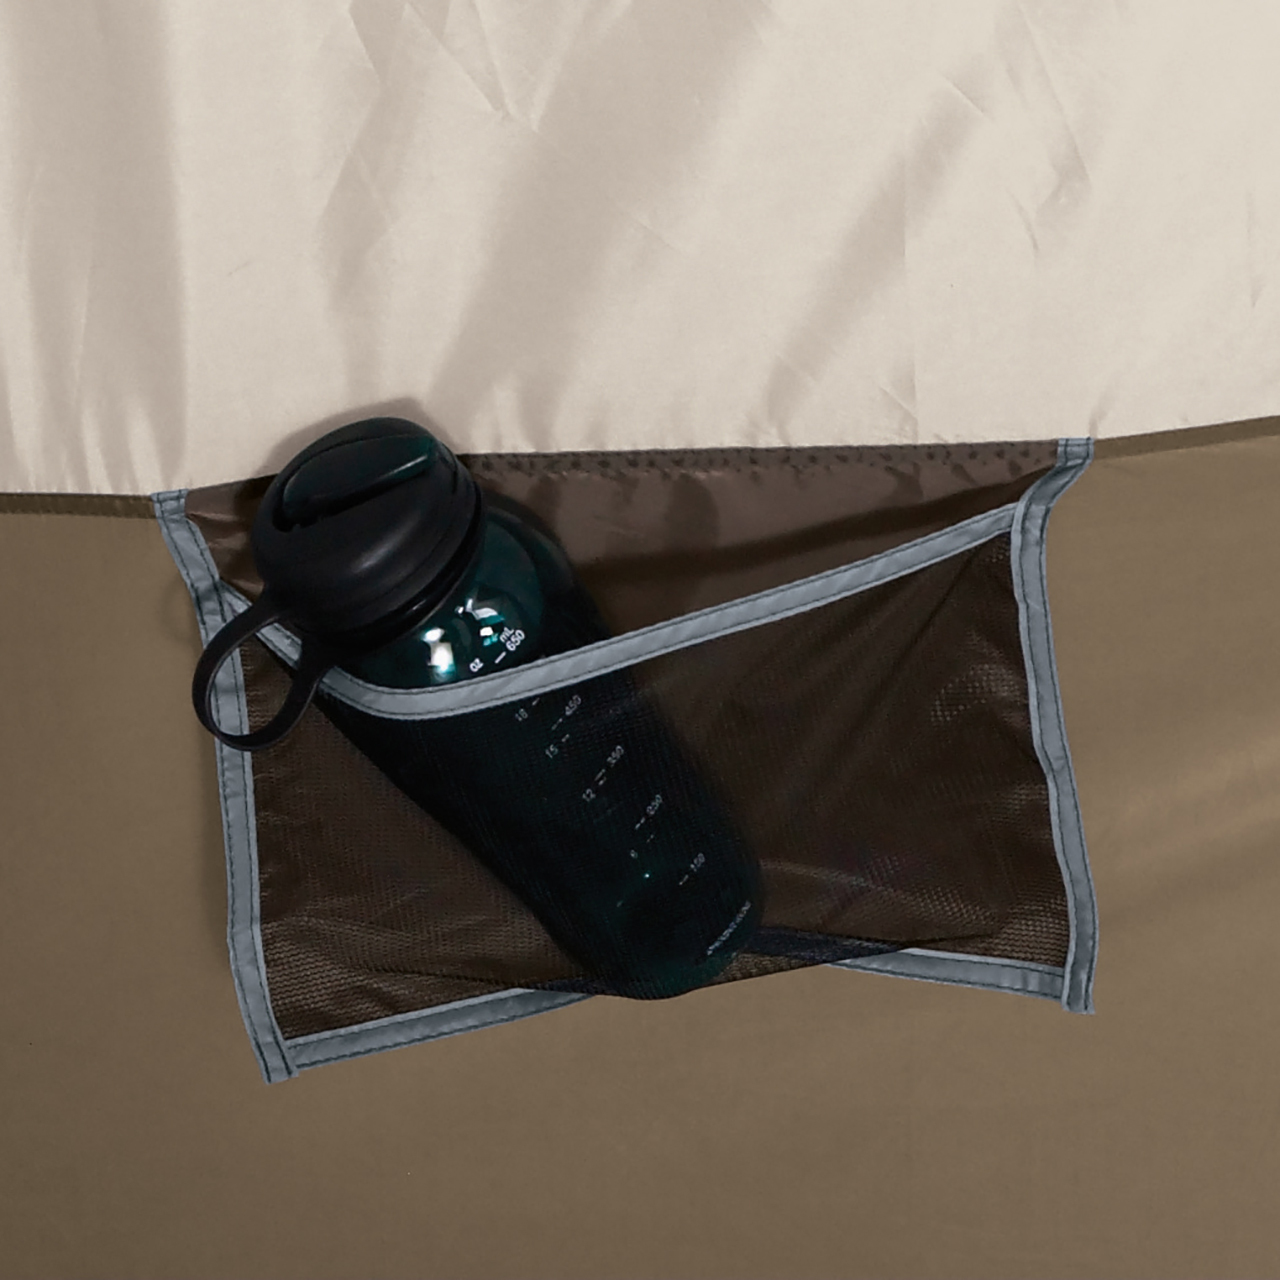 Close up view of an interior mesh pocket storing a water bottle in the Wenzel Klondike 8 tent